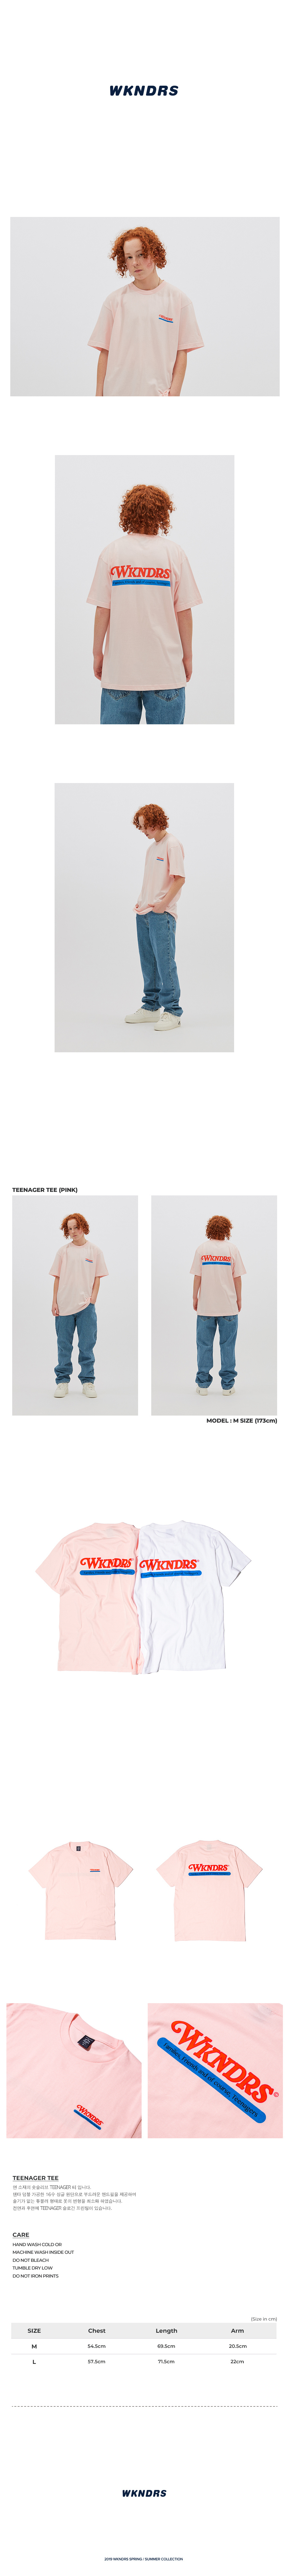 위캔더스(WKNDRS) TEENAGER TEE (PINK)